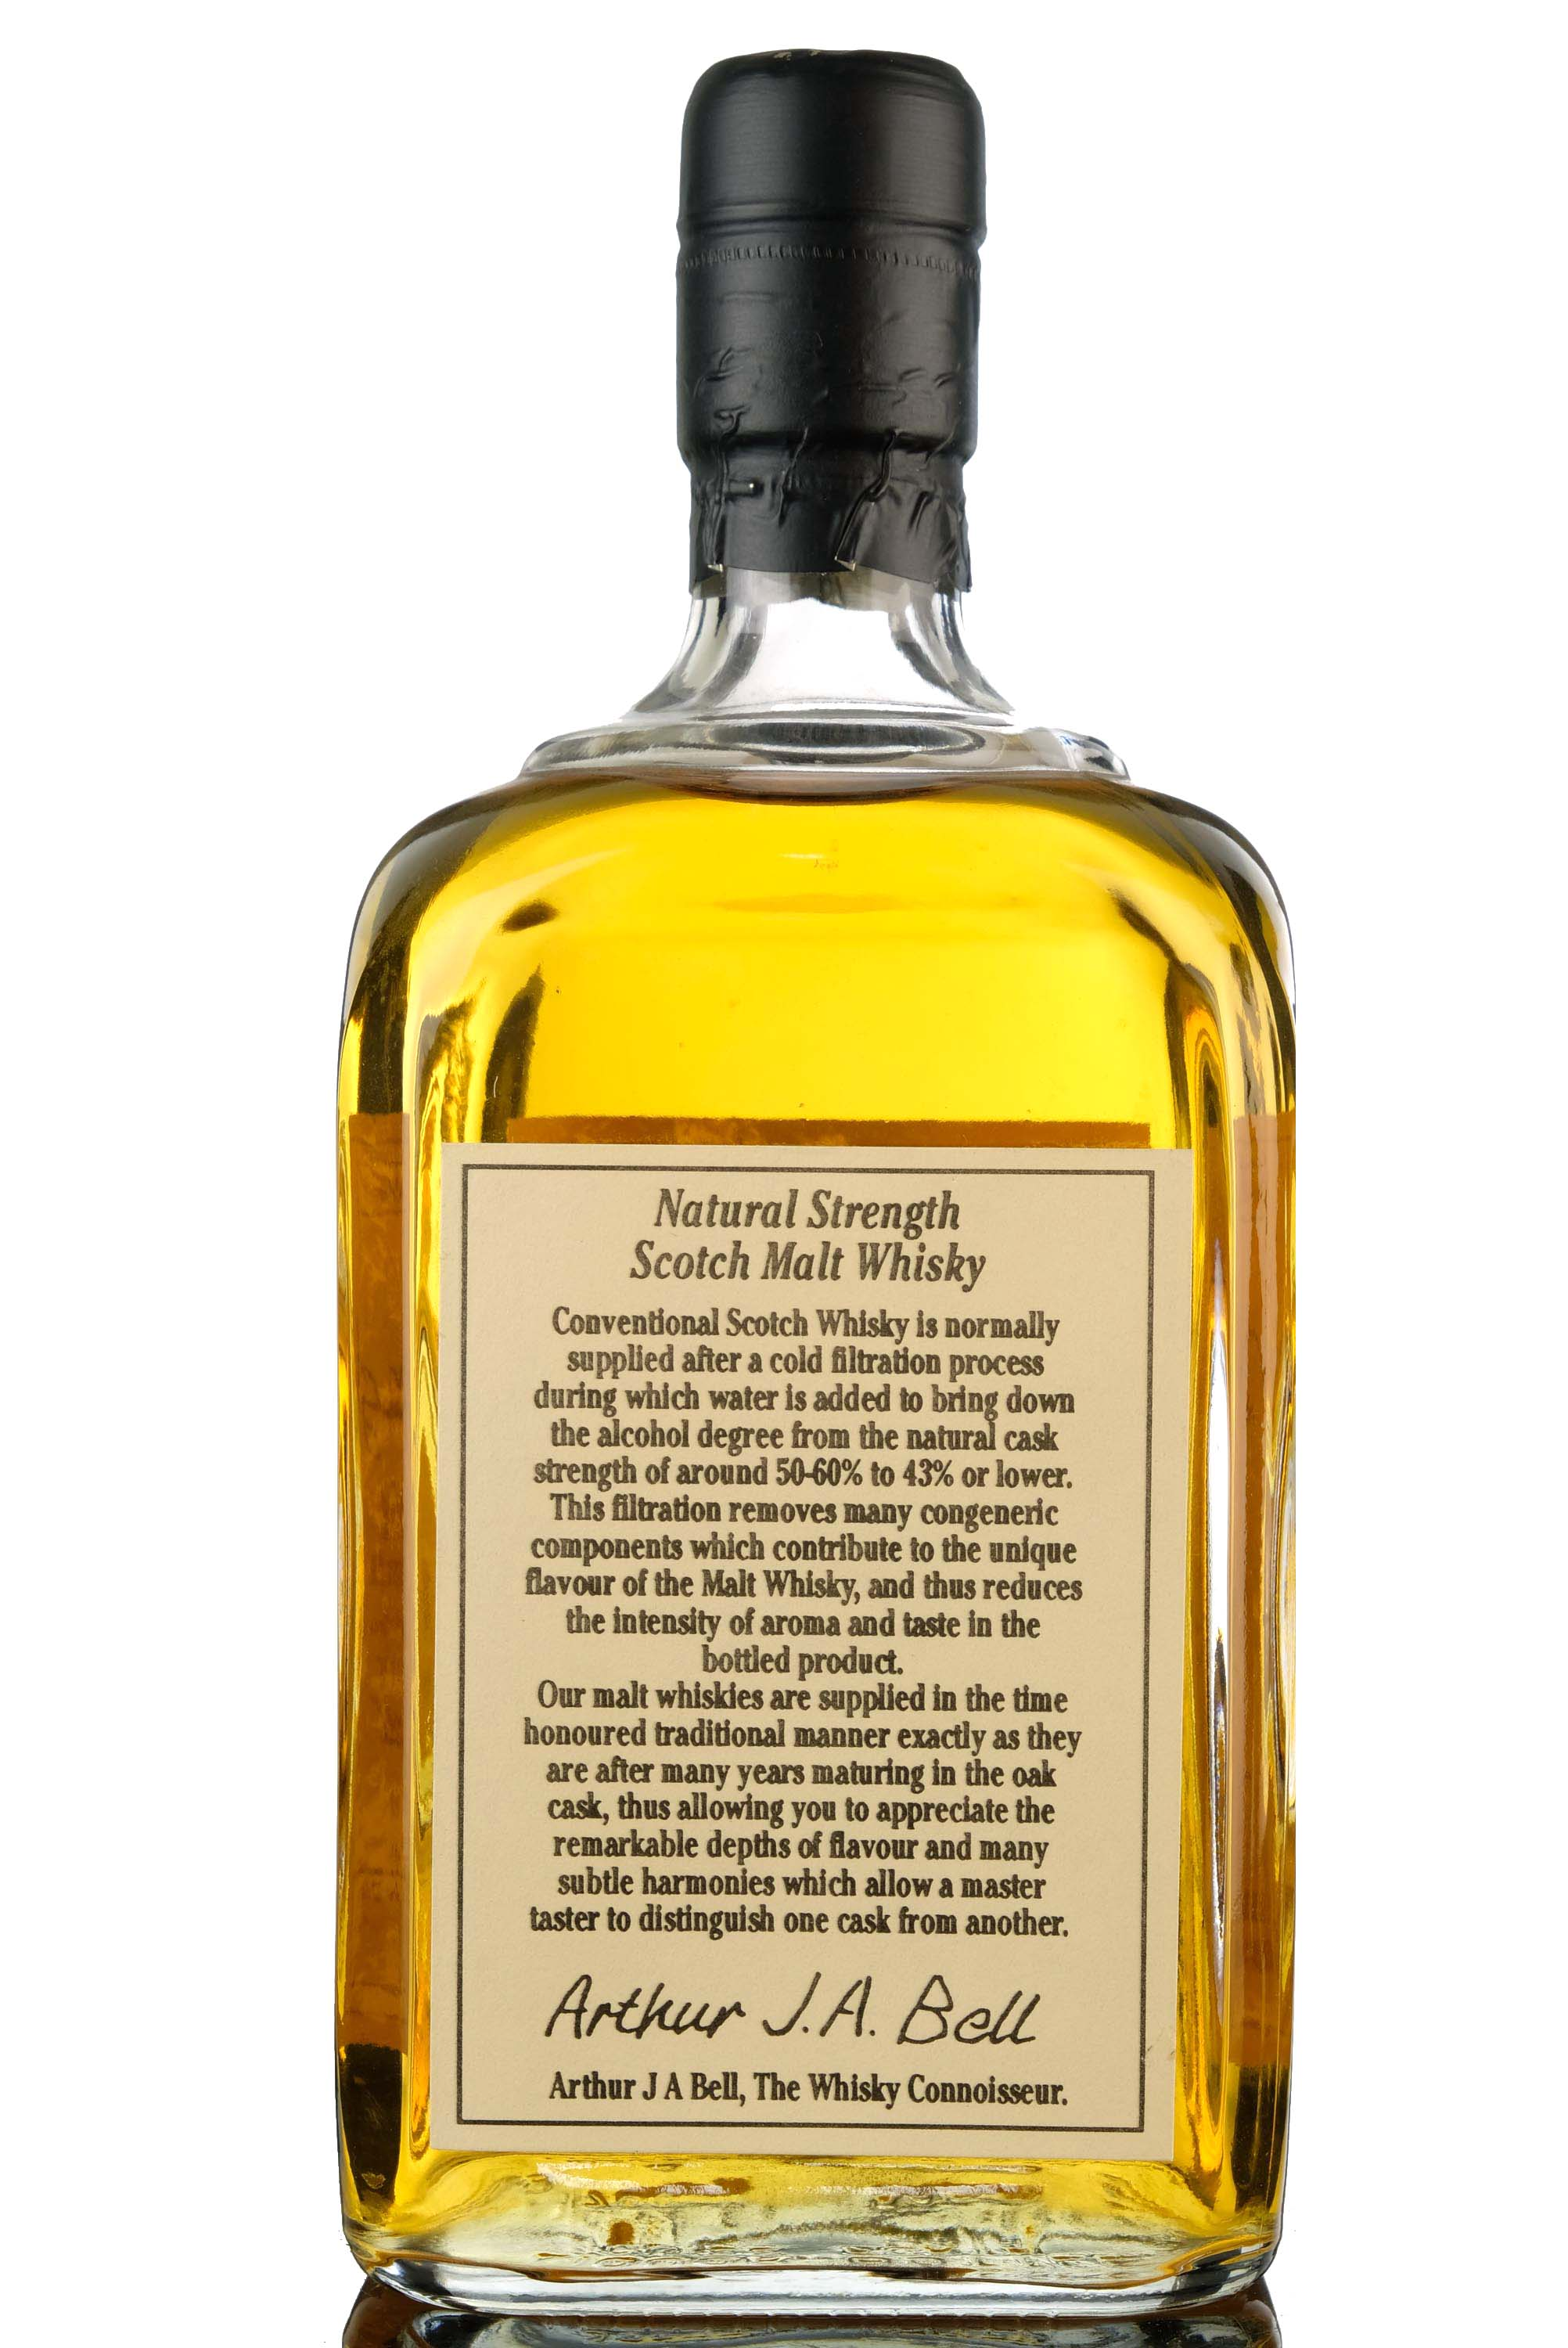 balmenach miltonhaugh 1966 - 28 year old - the whisky connoisseur - single cask 3154